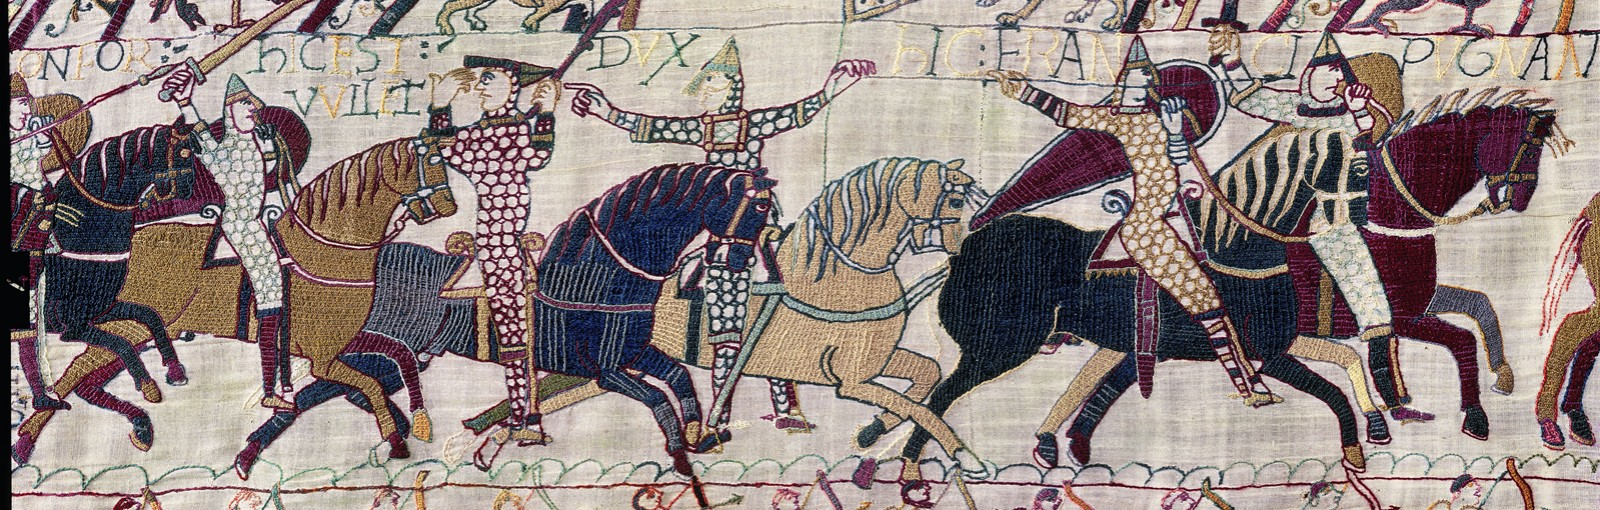 Bayeux tapestry - scene 55 - King William: See, I'm alive!